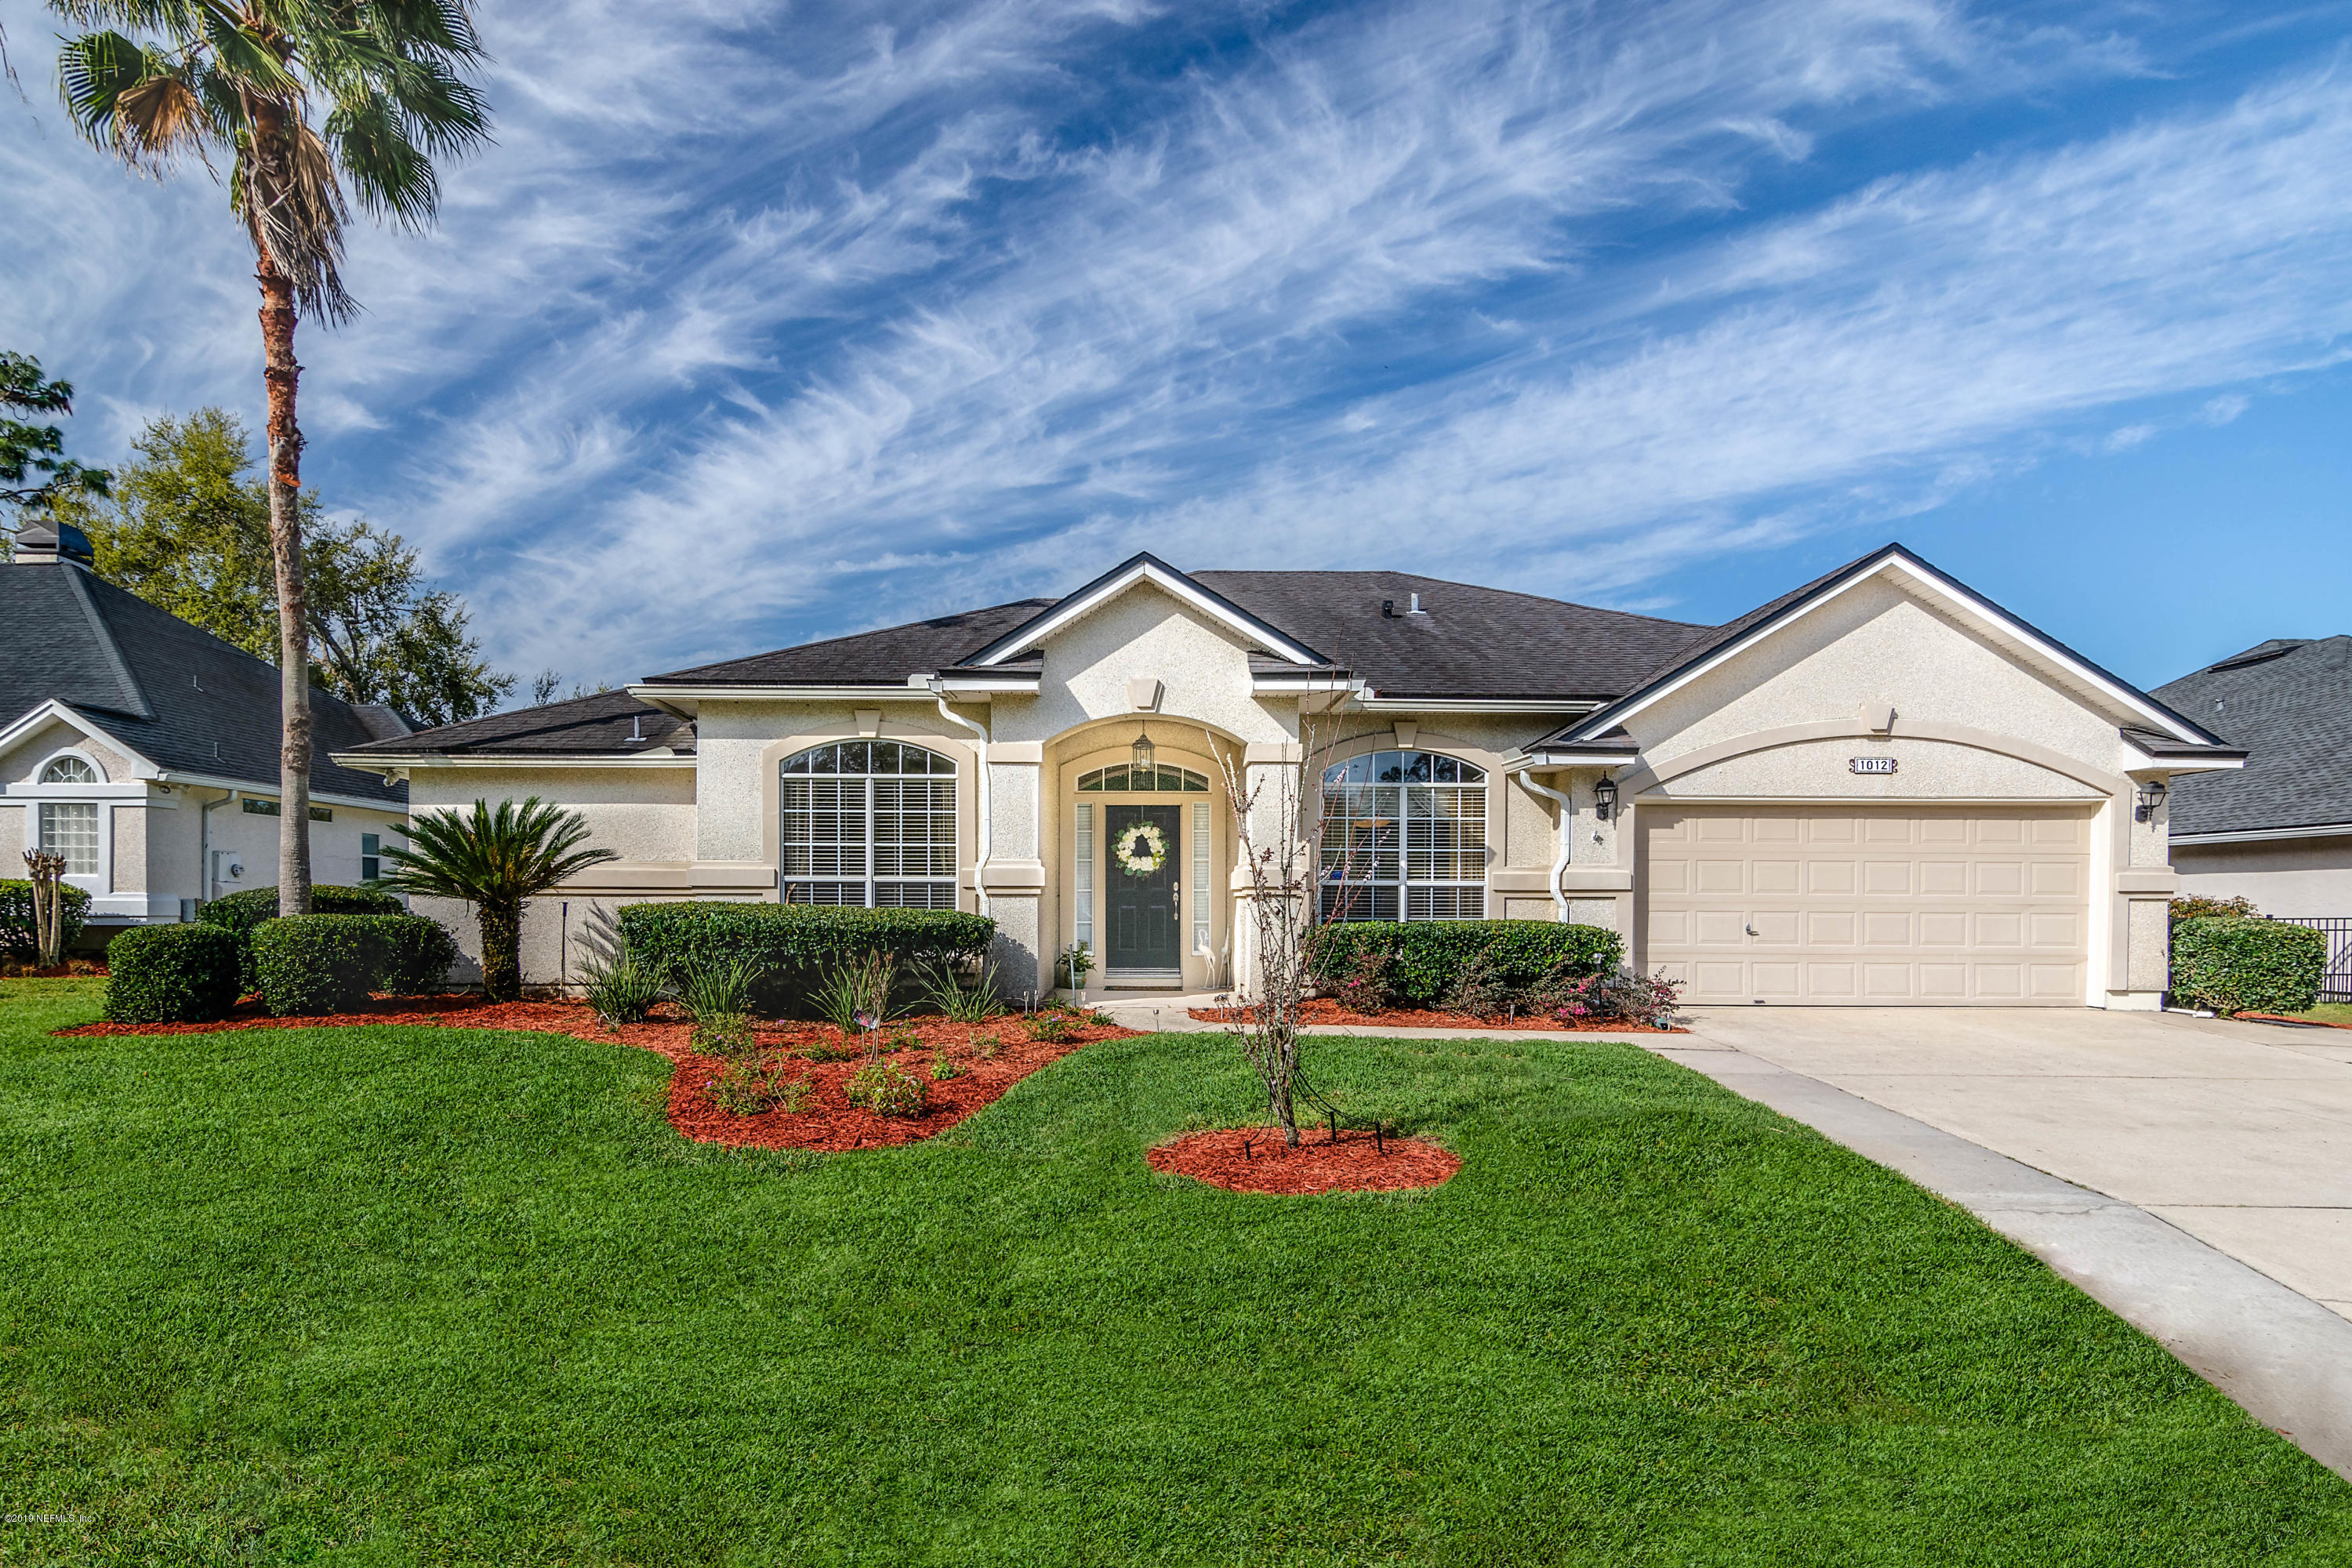 1012  BLACKBERRY LN, Julington Creek in ST. JOHNS County, FL 32259 Home for Sale